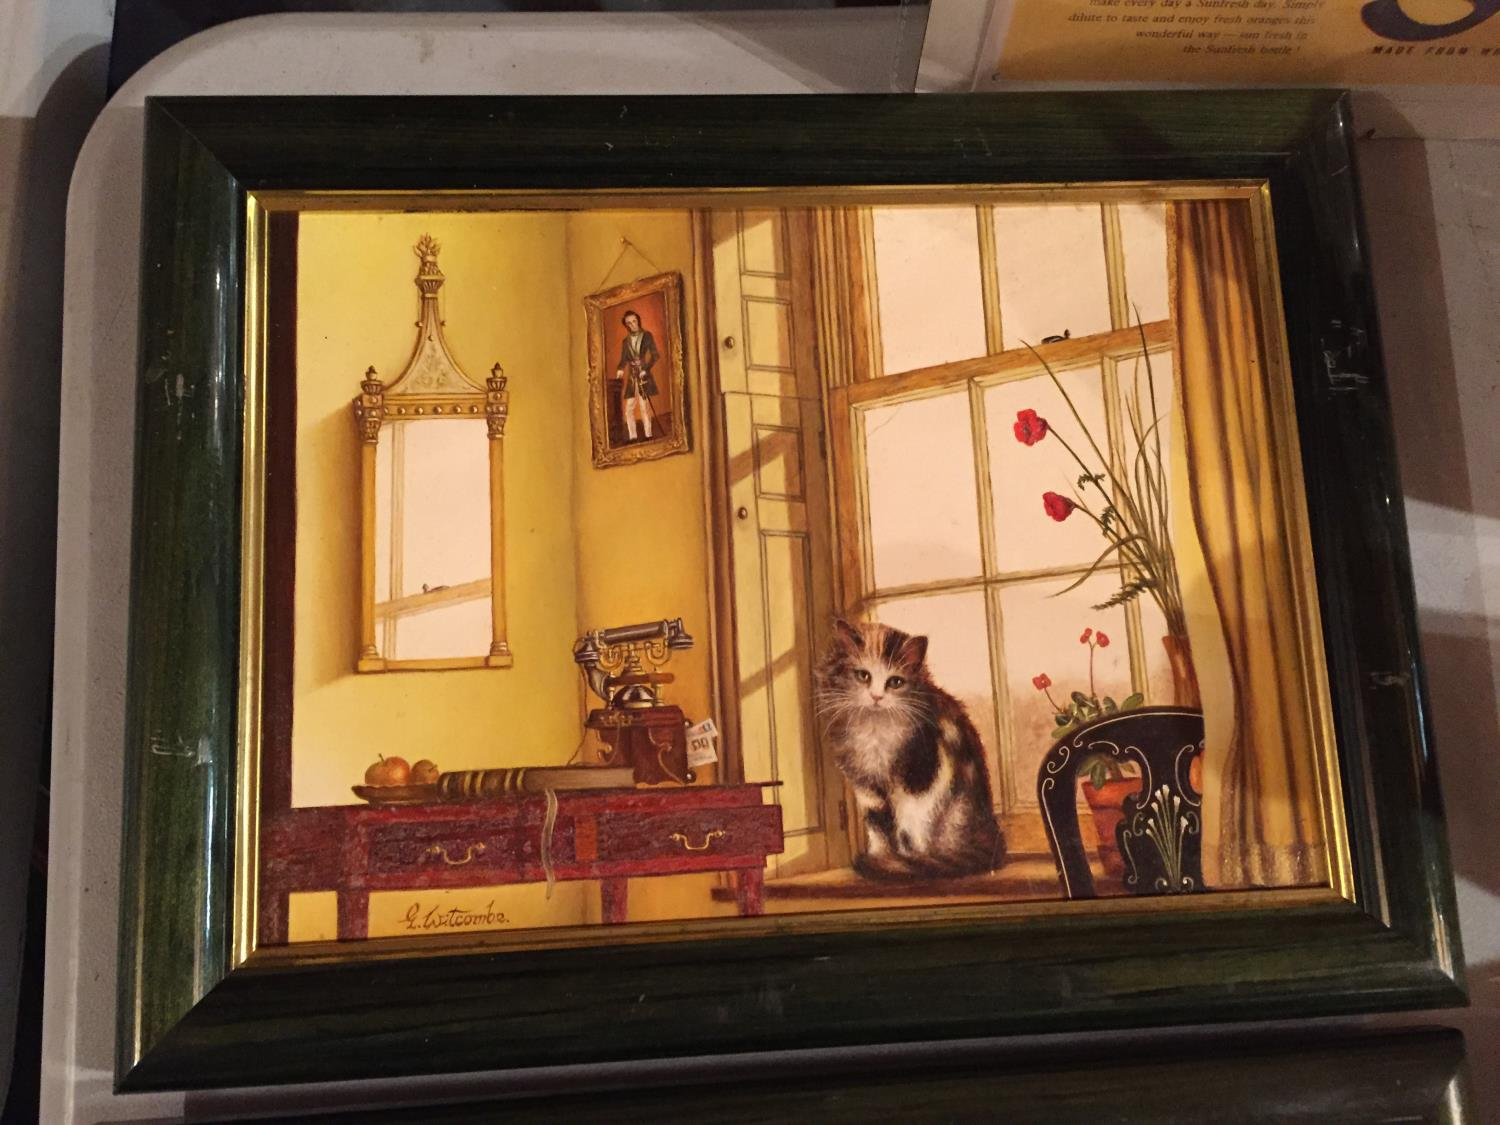 TWO FRAMED PAINTINGS OF A CAT IN A WINDOW AND A DOG IN A WINDOW - Image 6 of 6